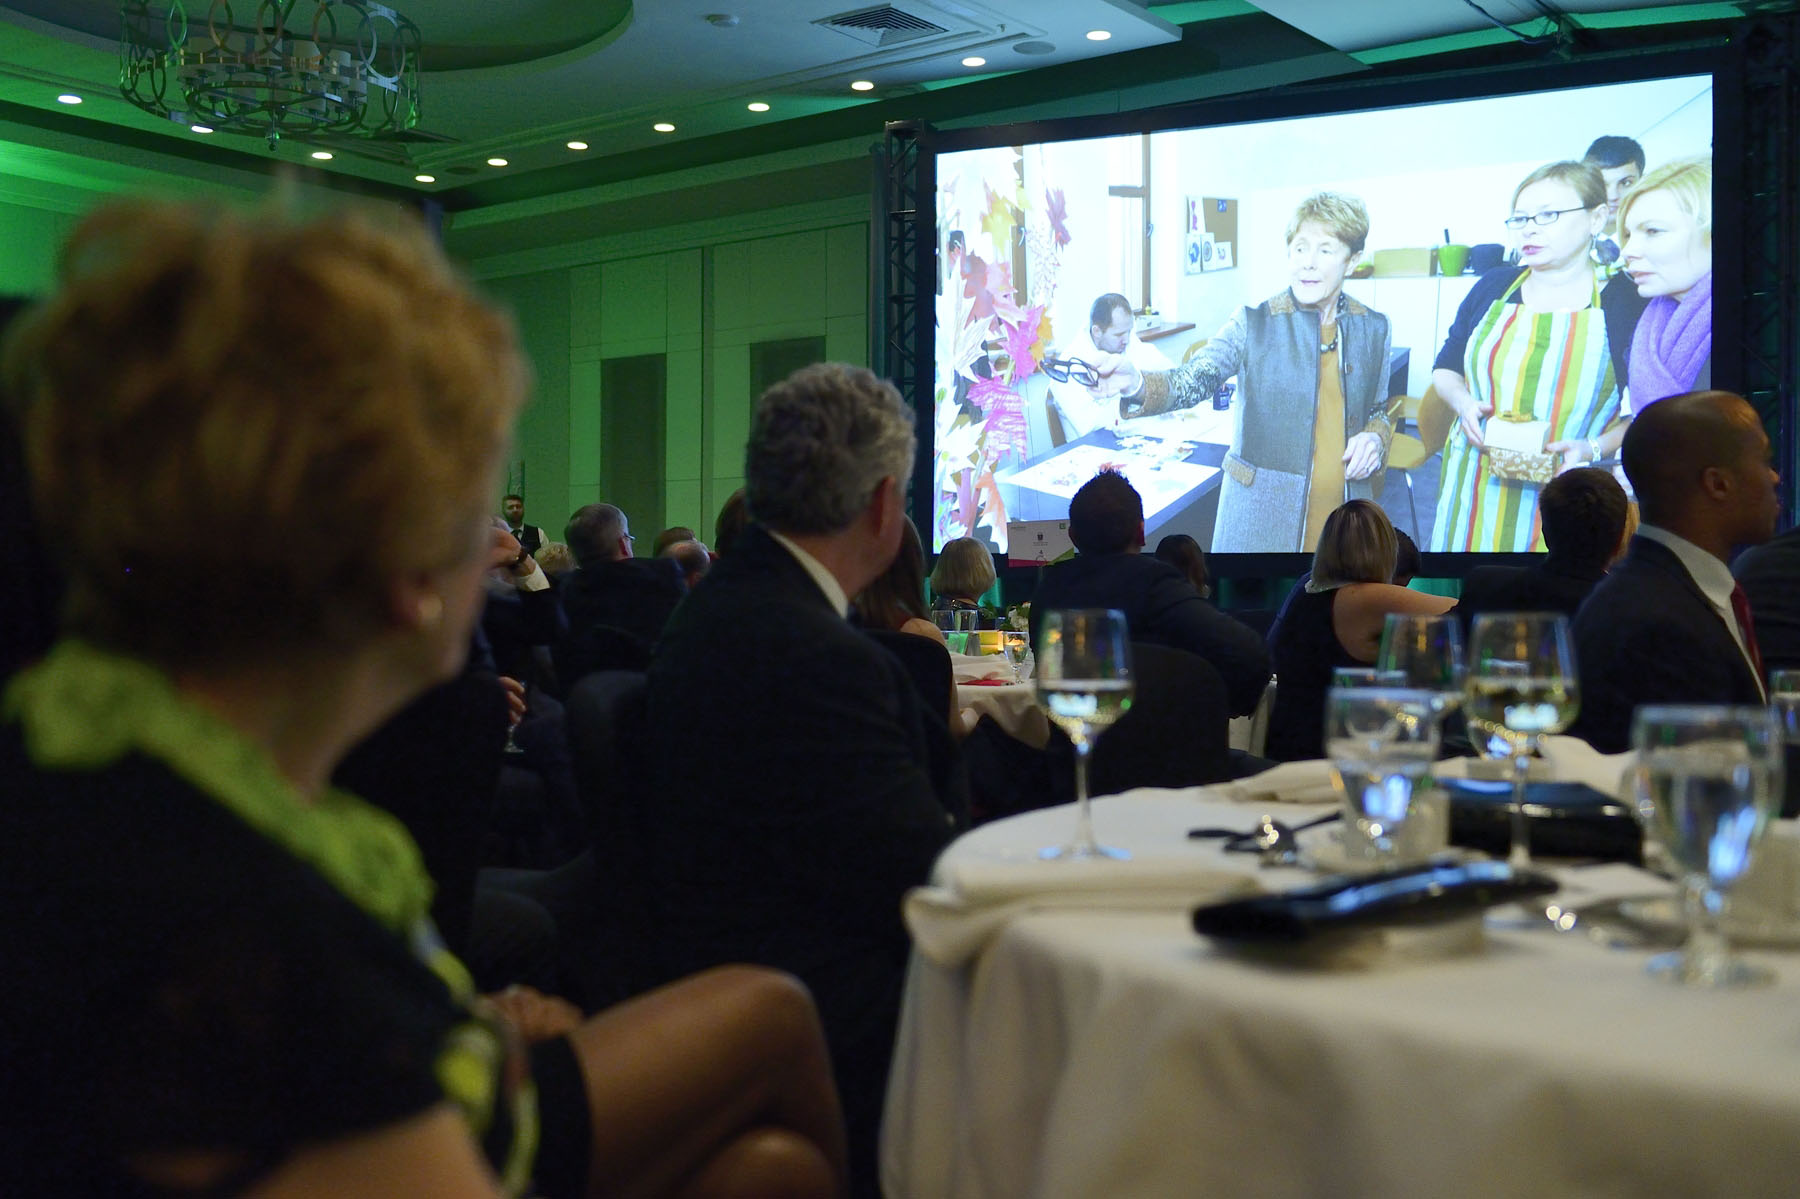 A video highlighting how Her Excellency adds her voice to reducing the stigma surrounding mental illness was presented.